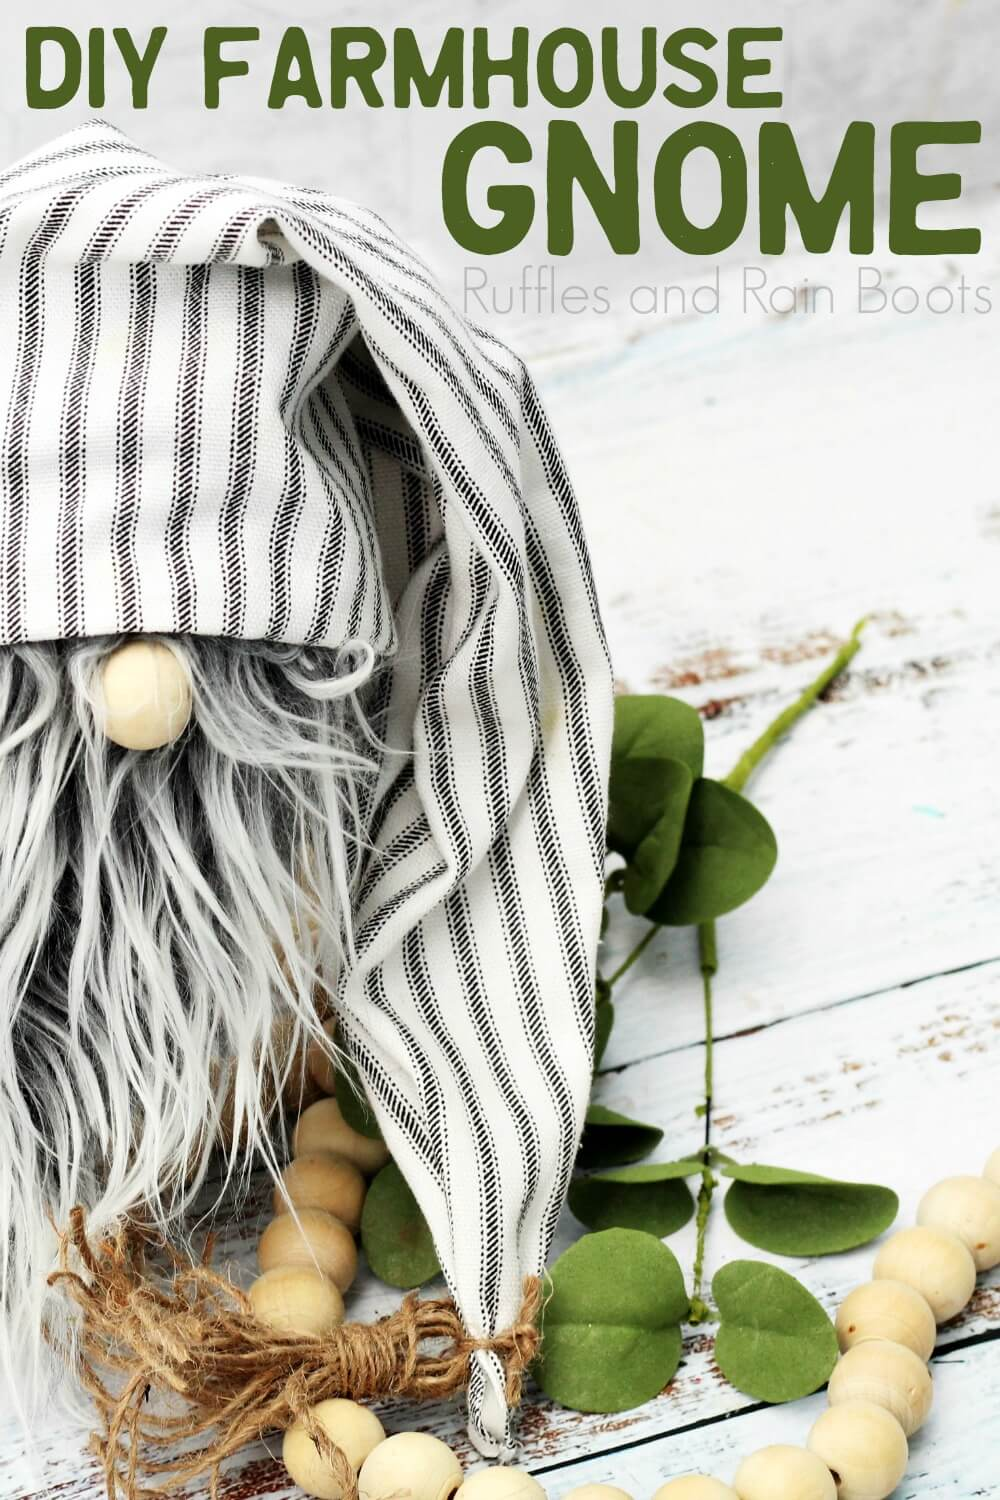 rustic gnome with natural elements on which background with text which reads DIY farmhouse gnome